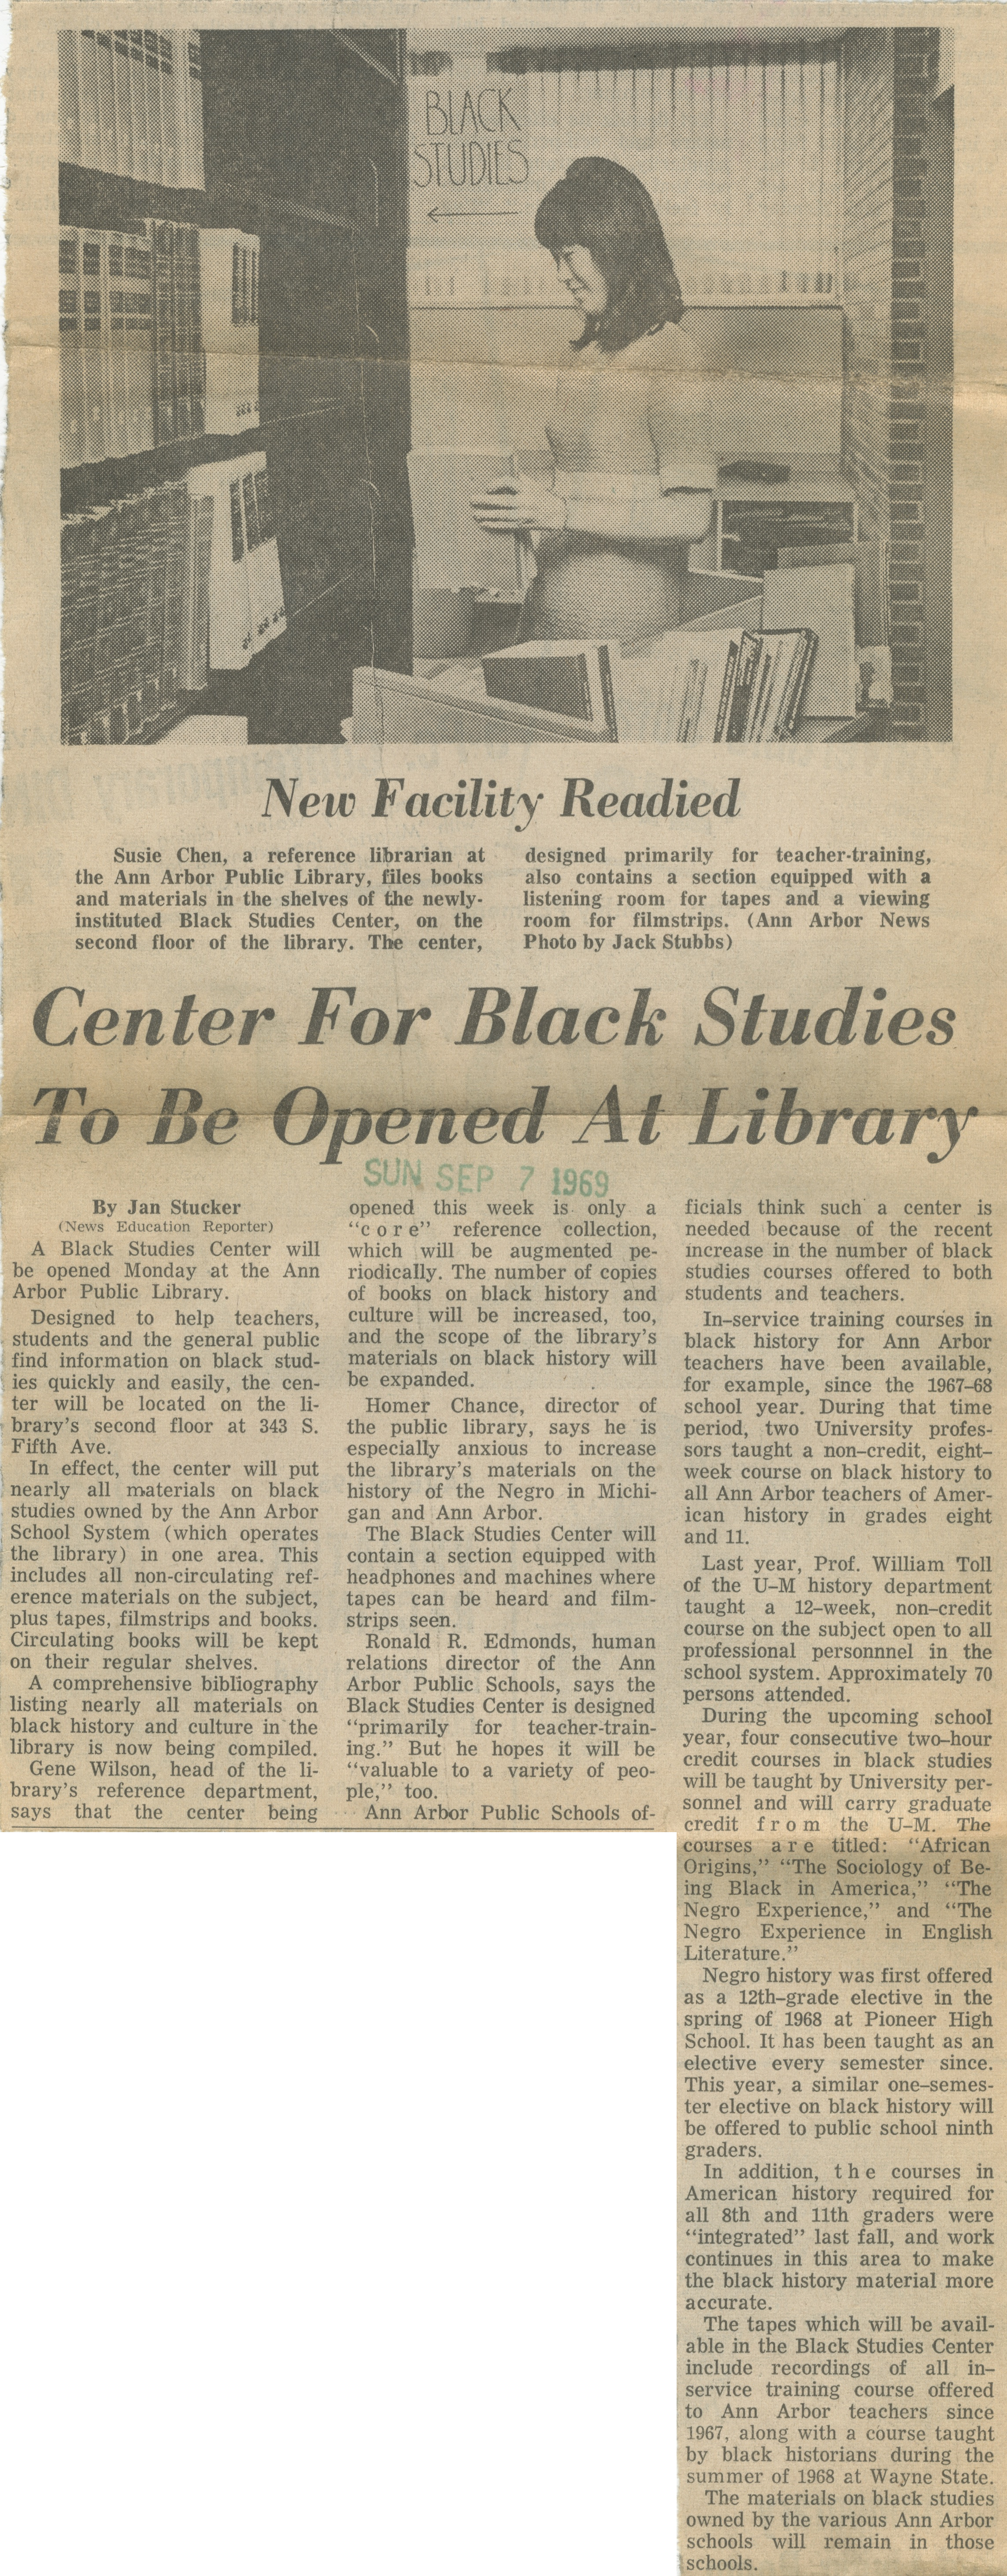 Center For Black Studies To Be Opened At Library image